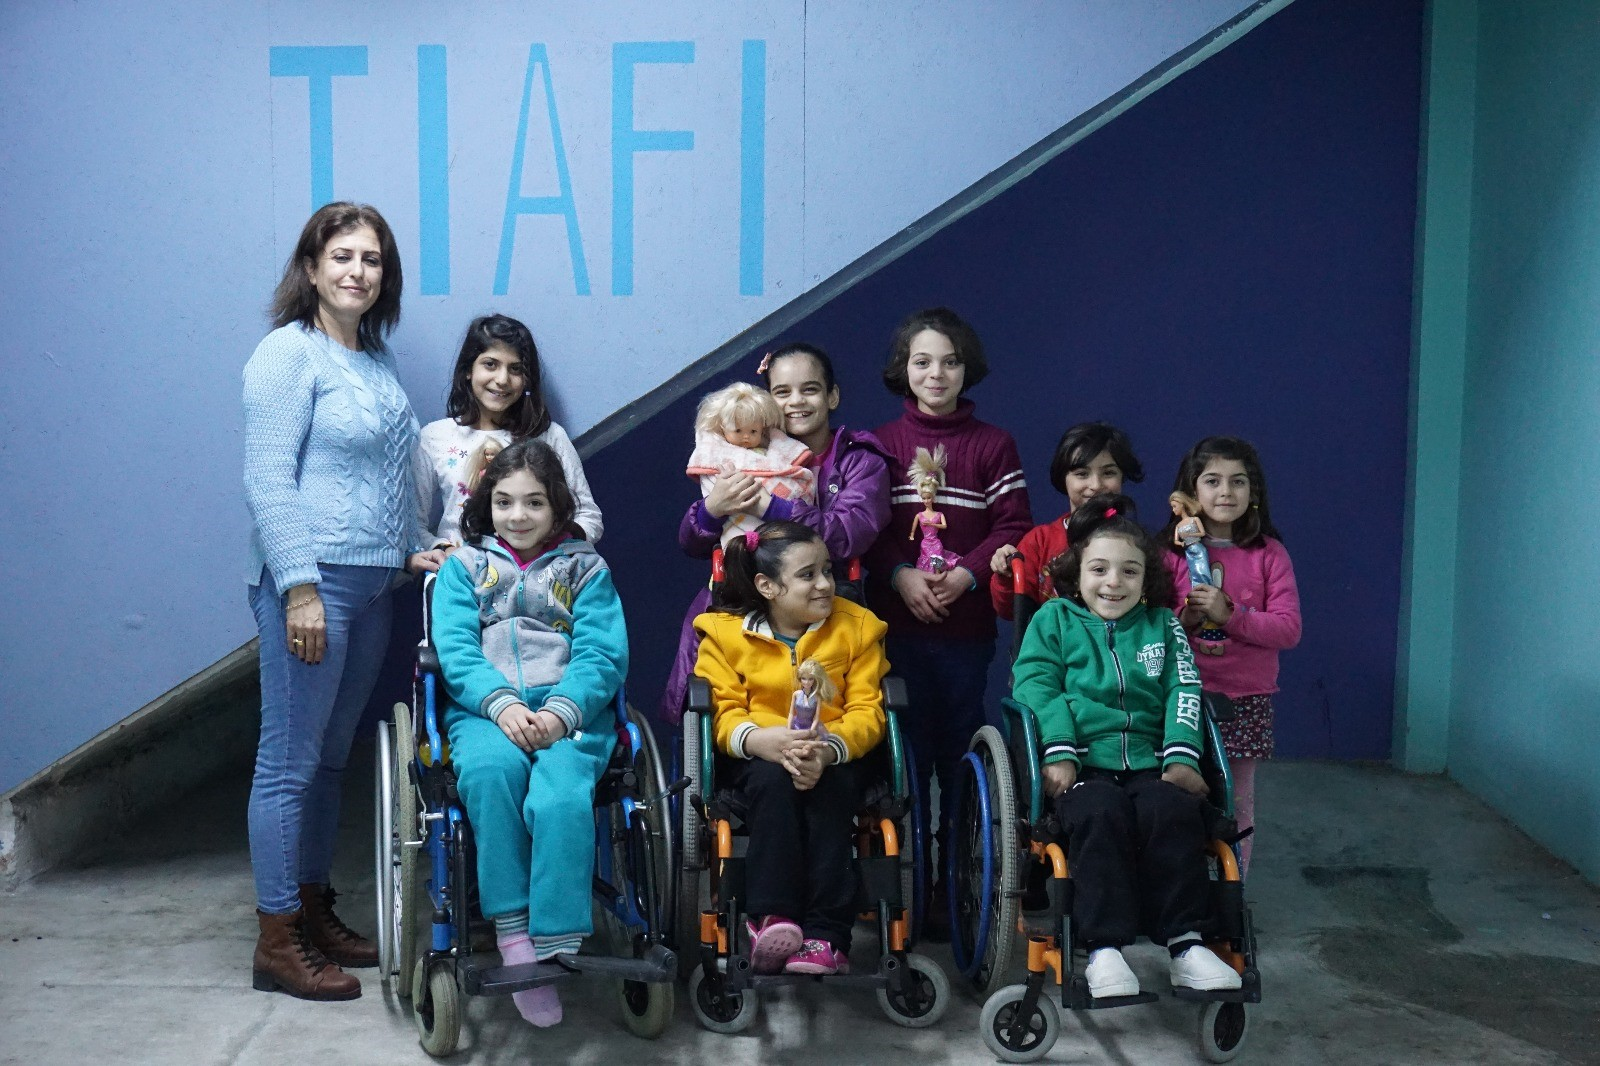 TIAFI: An organisation supporting vulnerable people in Turkey